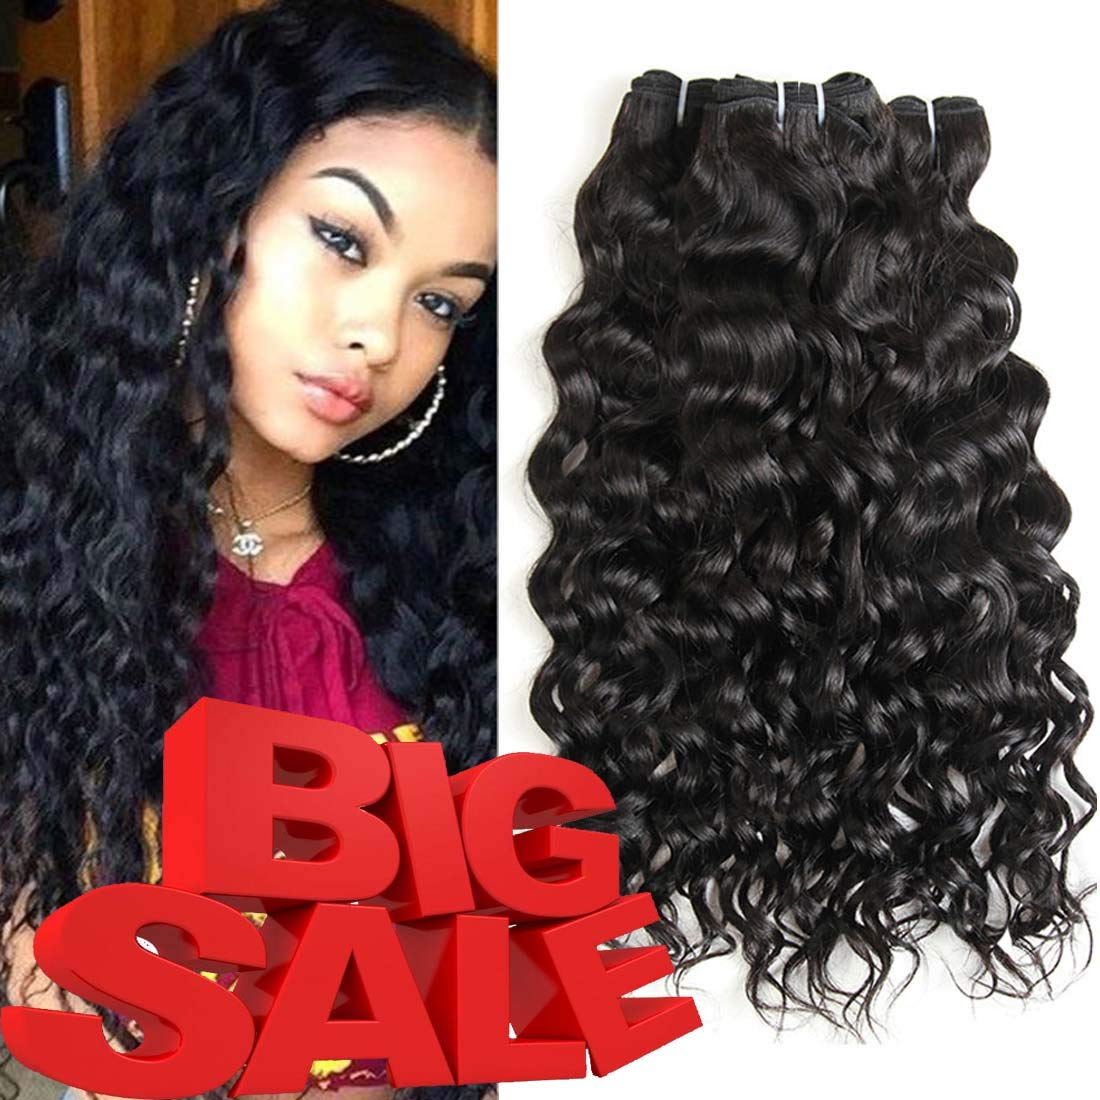 9ac4326dda Amazon.com  XYHair Factory Wholesale Brazilian Virgin Water Wave 3 Bundles  Human Remy Hair Weave Extensions Wet And Wavy Top Quality 100% Unprocessed  Virgin ...